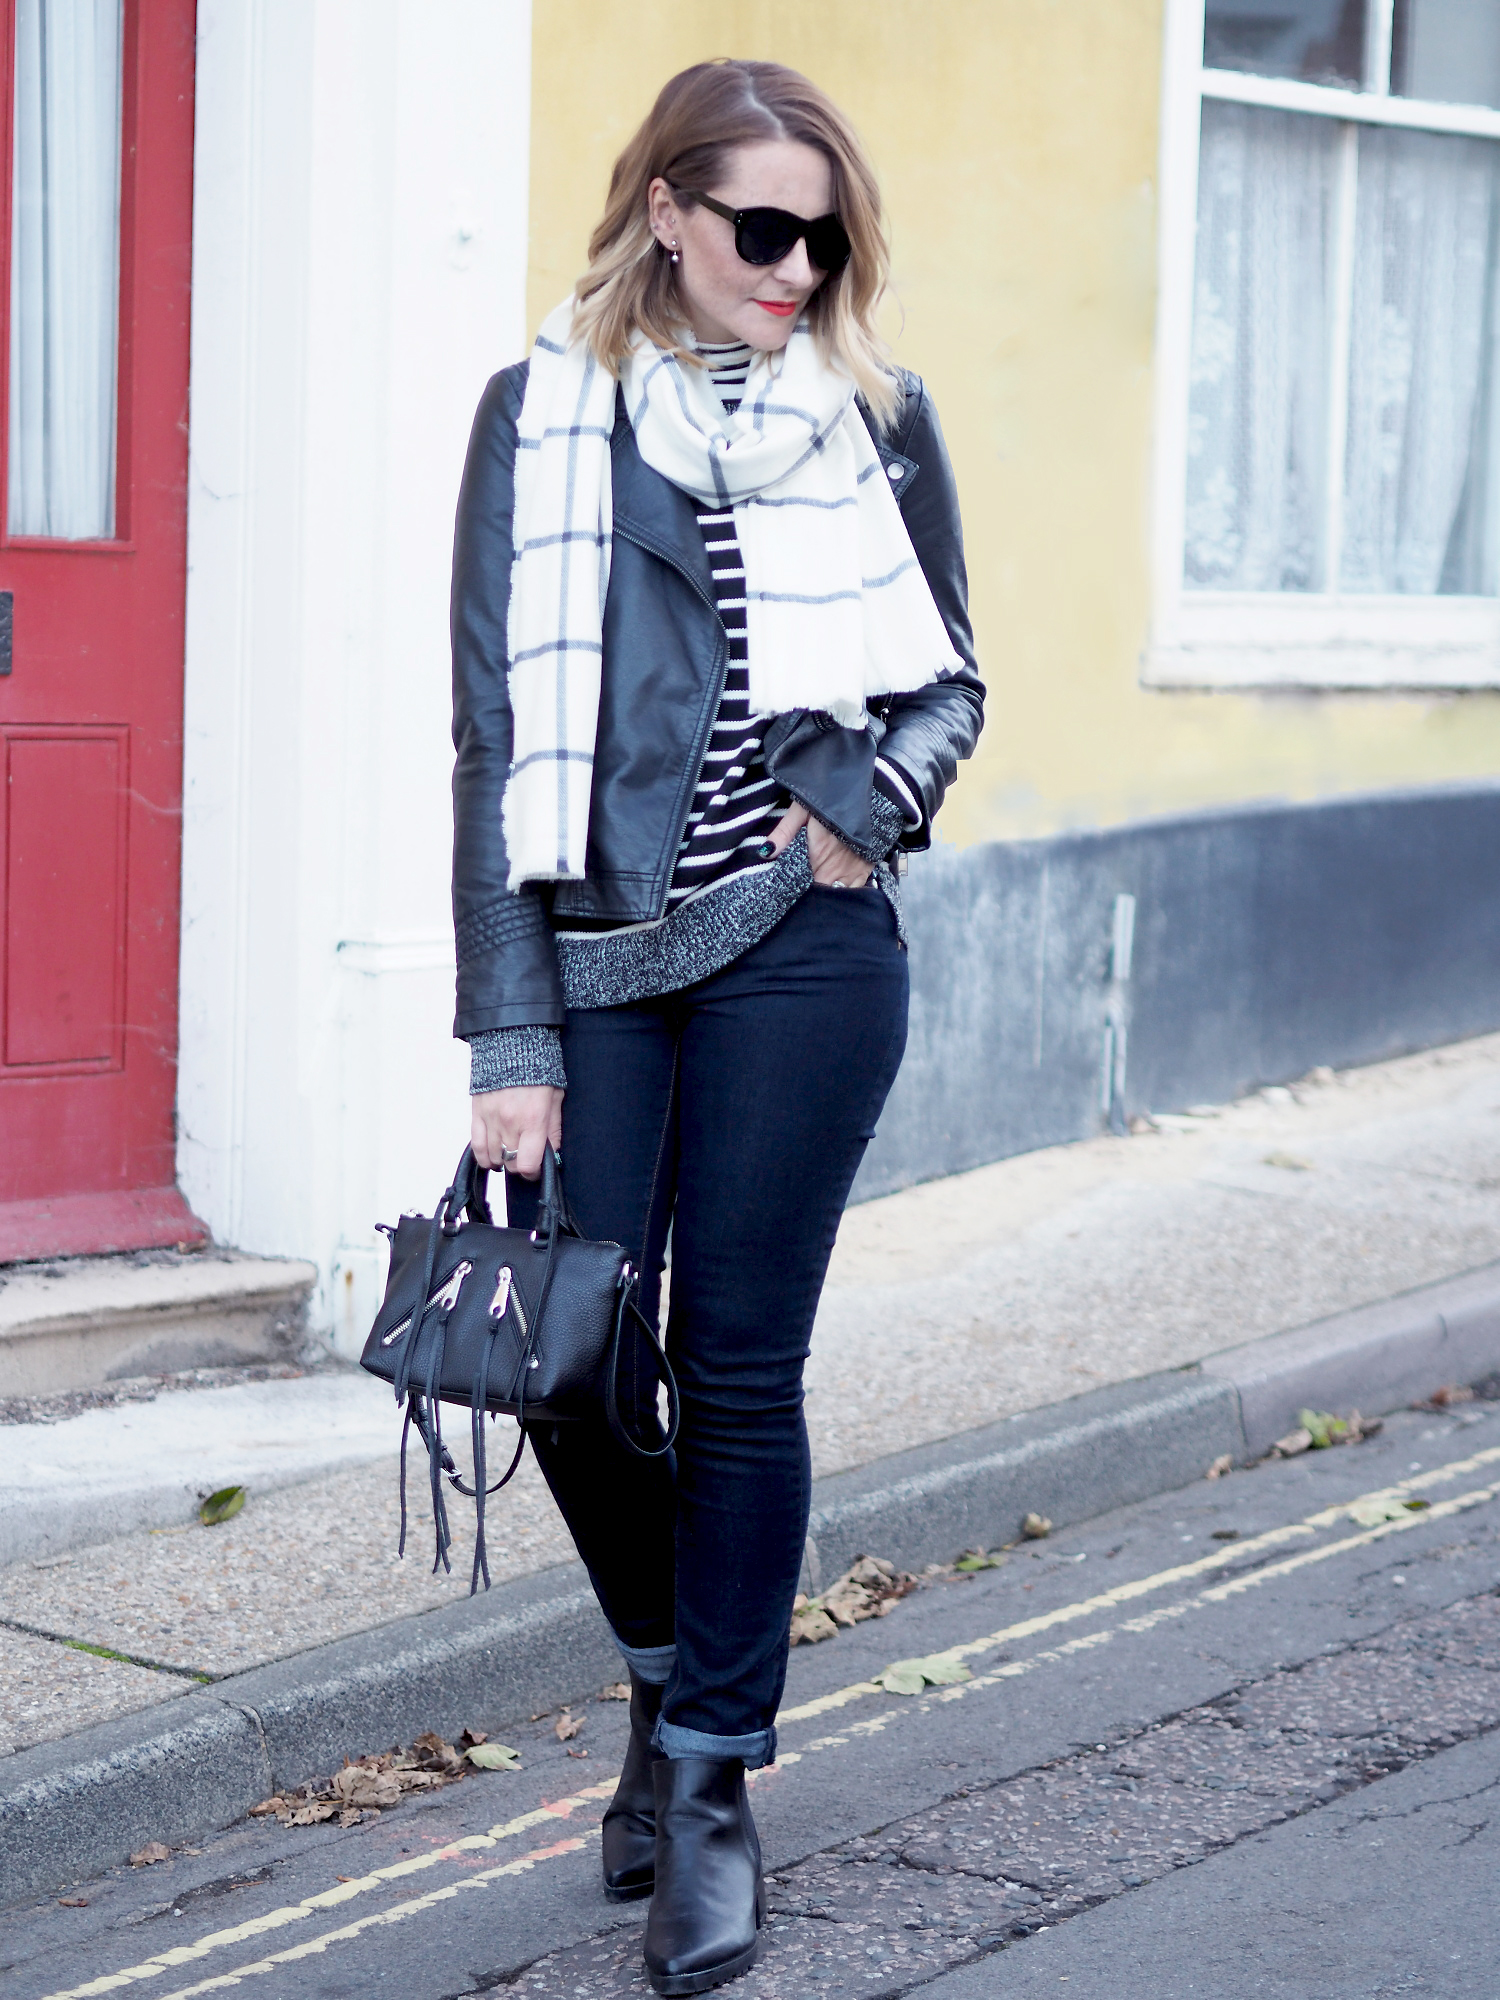 black and white striped jumper and check scarf